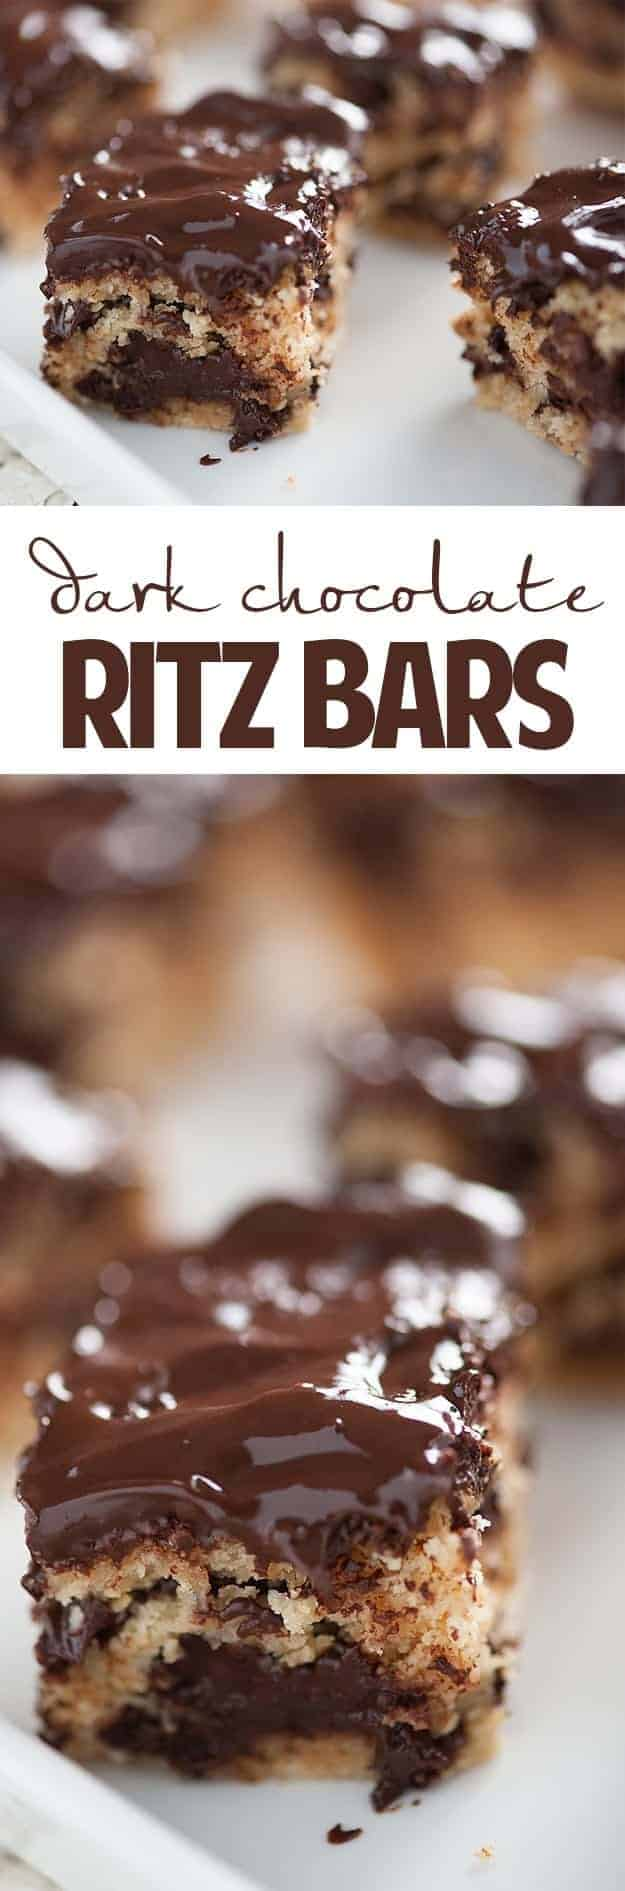 Dark Chocolate Ritz Bars Recipe